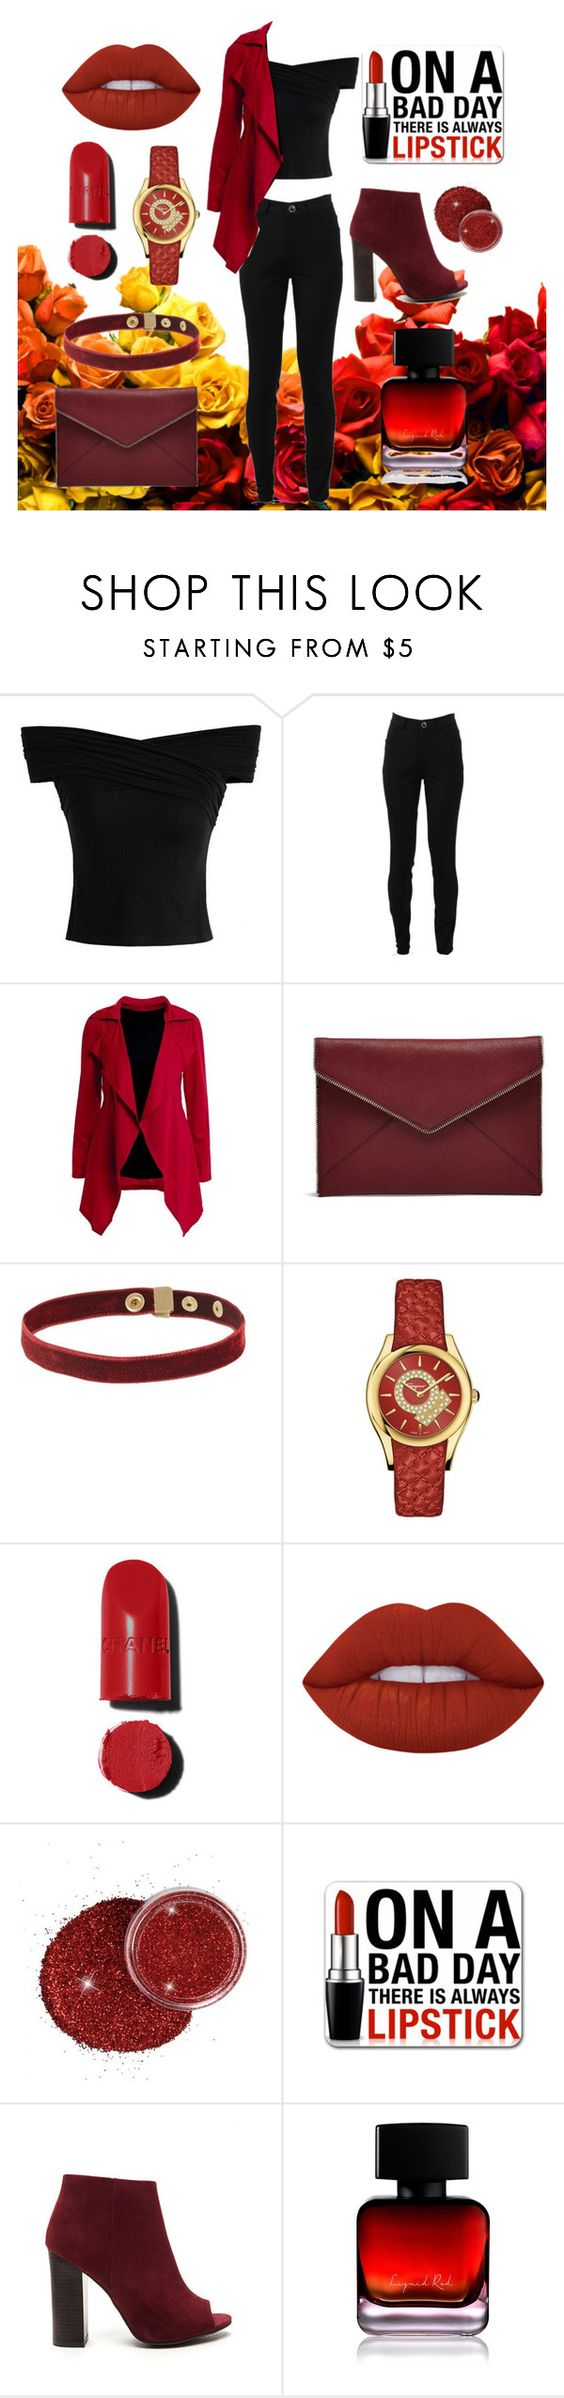 """Lipstick"" by amandaubub ❤ liked on Polyvore featuring Chicwish, Victoria Beckham, Rebecca Minkoff, Salvatore Ferragamo, Chanel, Lime Crime and The Collection by Phuong Dang"